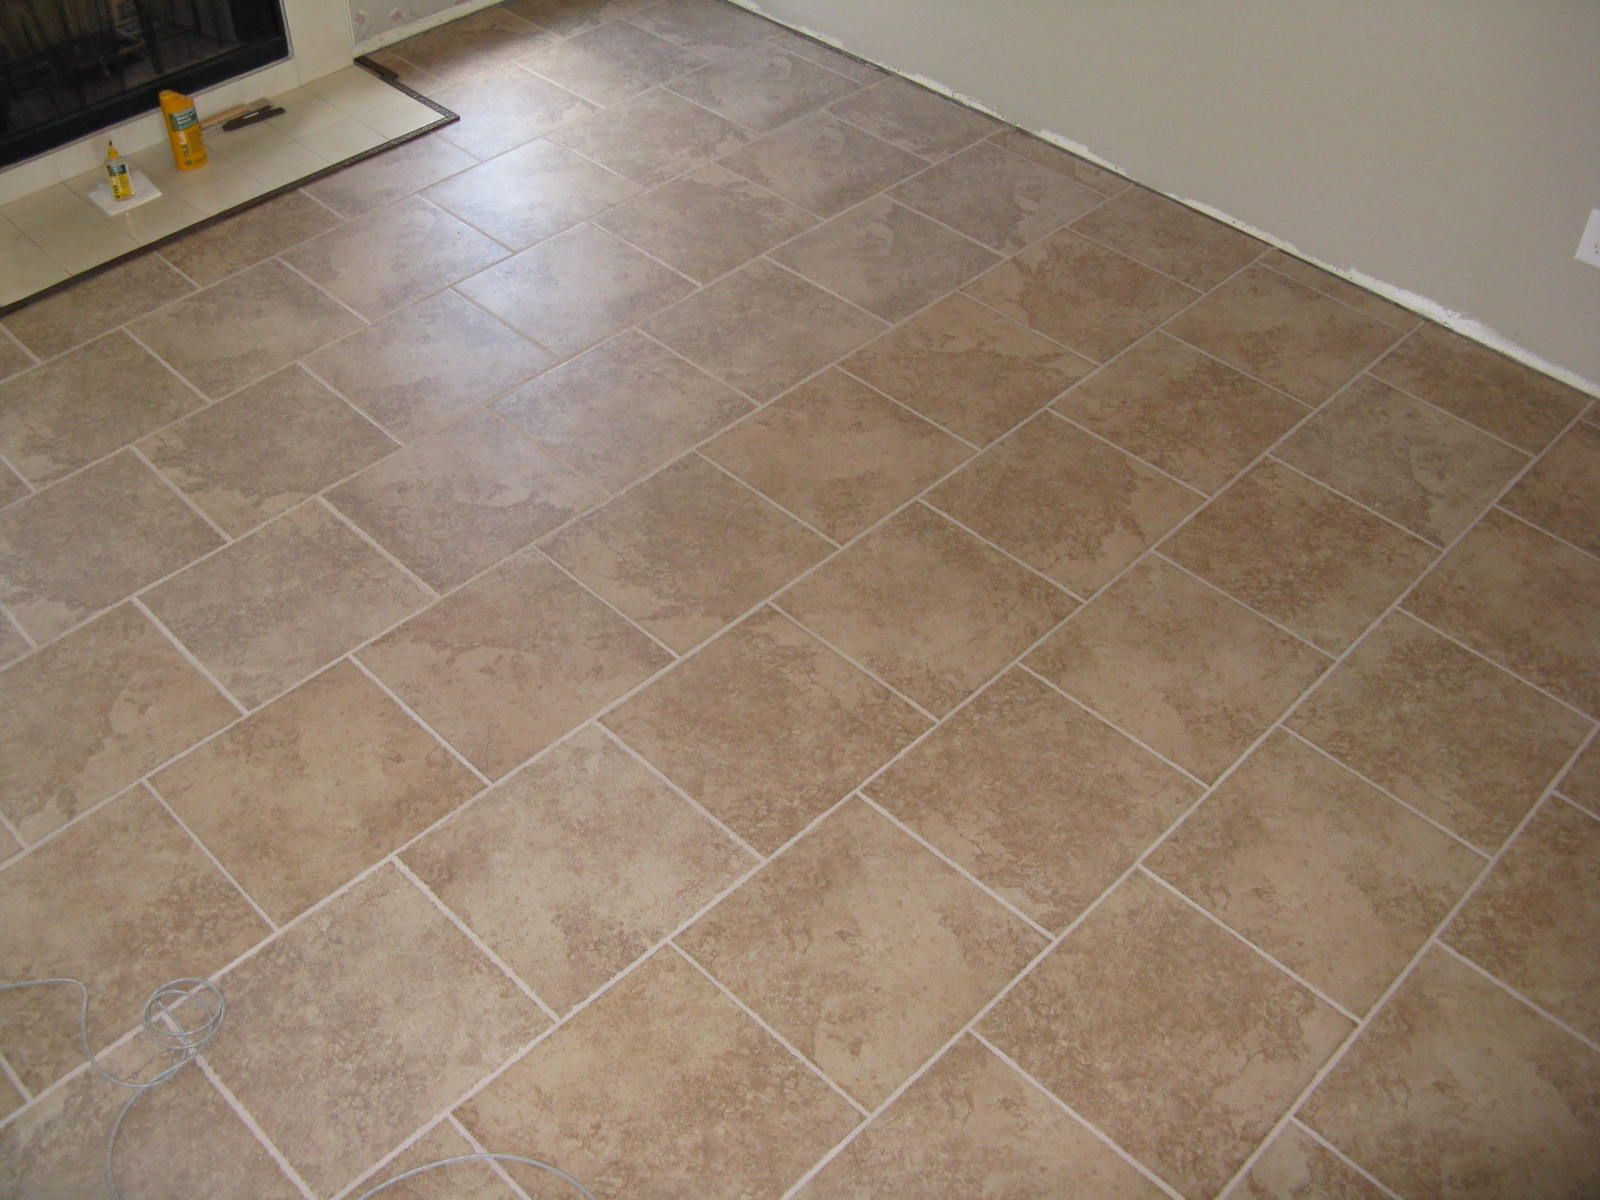 Porcelain tile patterns ceramic tile work design for Tile patterns for kitchen floor